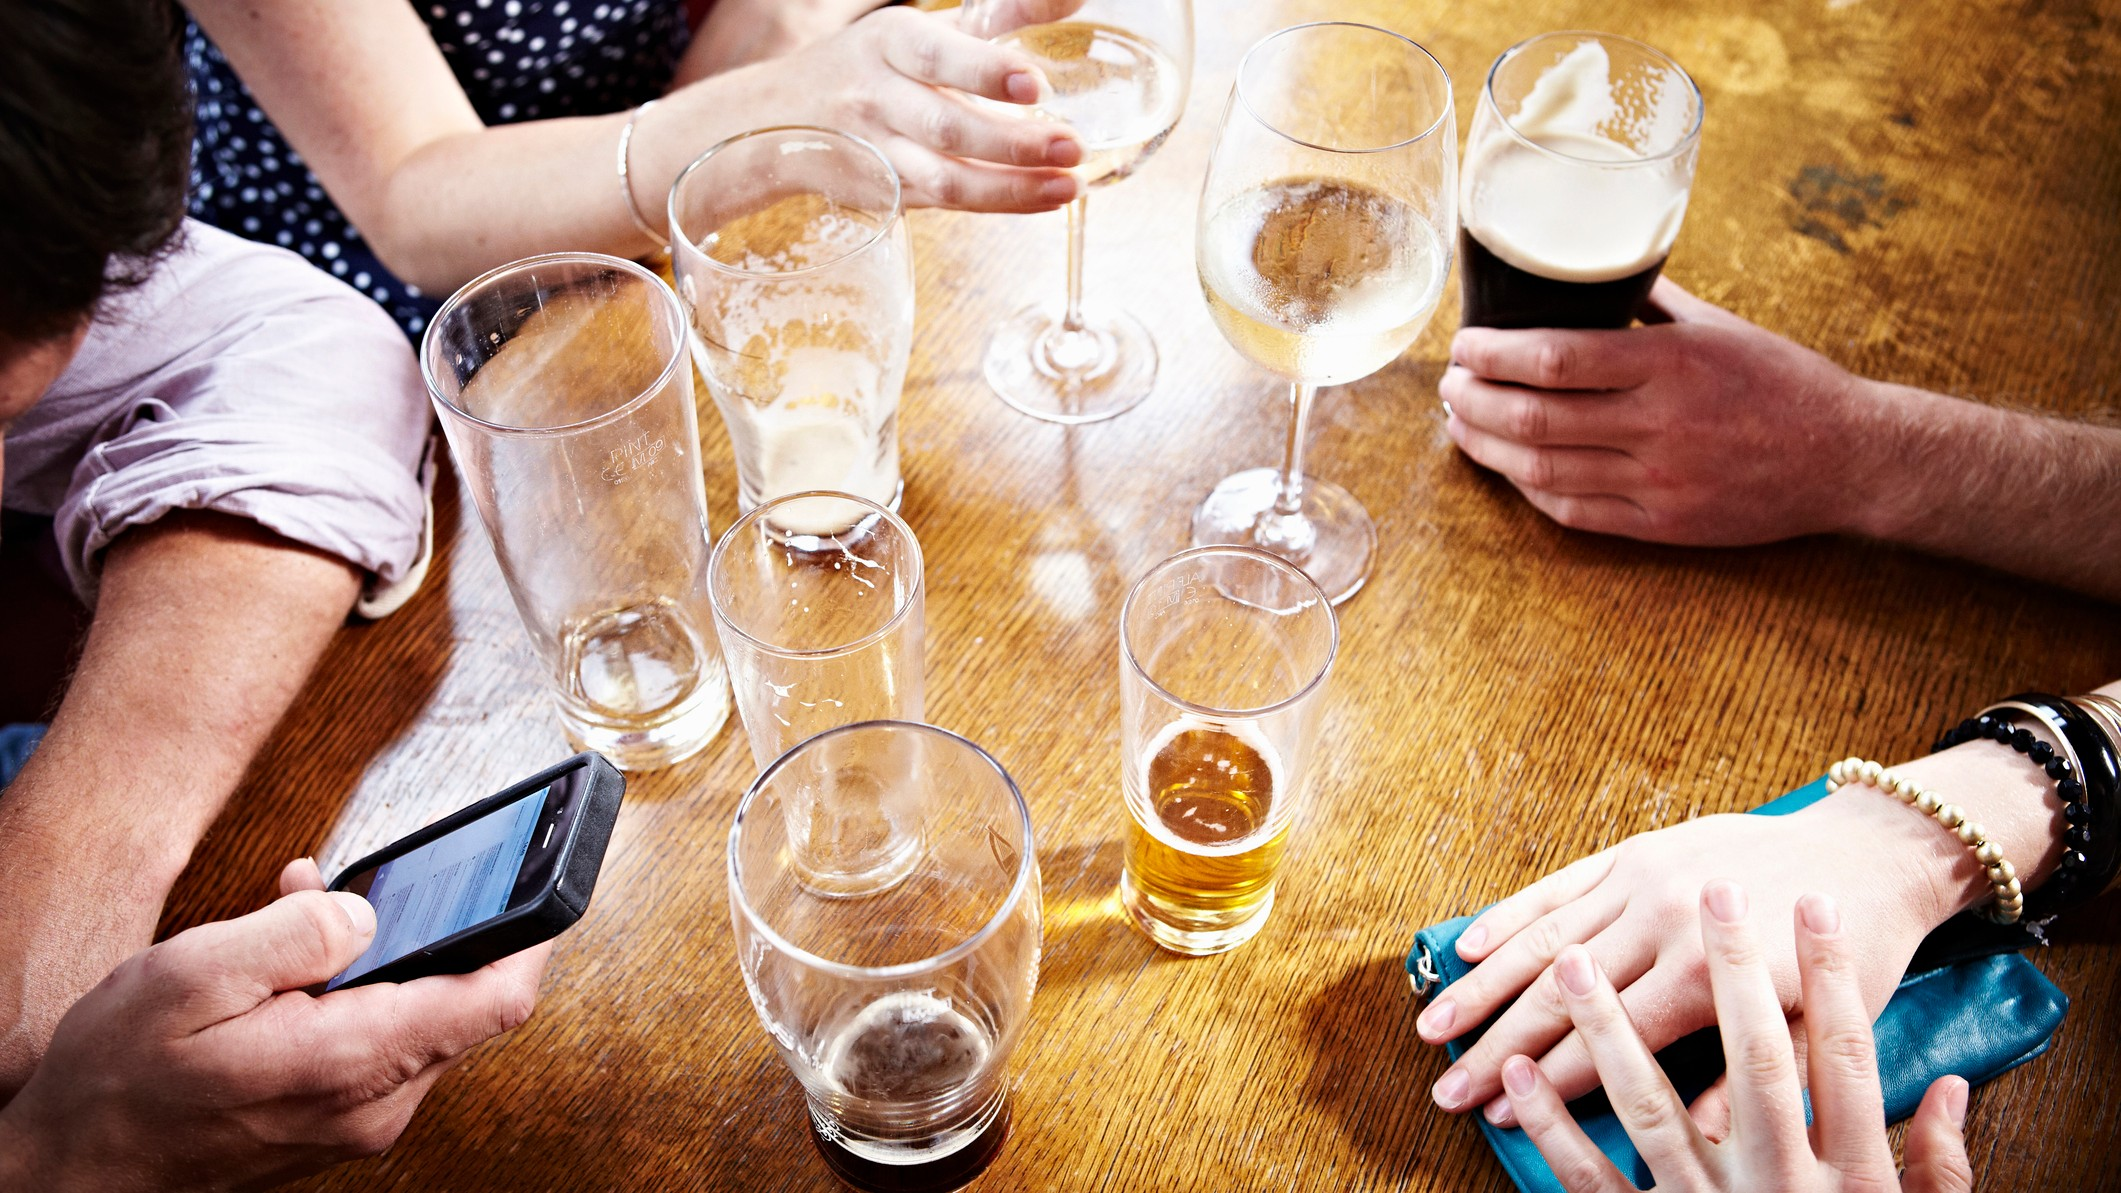 a study on alcohol effects and treatment Alcoholism (alcohol use disorder) is a disease that affects over 14 million people in the us get the facts on the symptoms, treatment, and long-term effects of alcoholism and alcohol abuse.